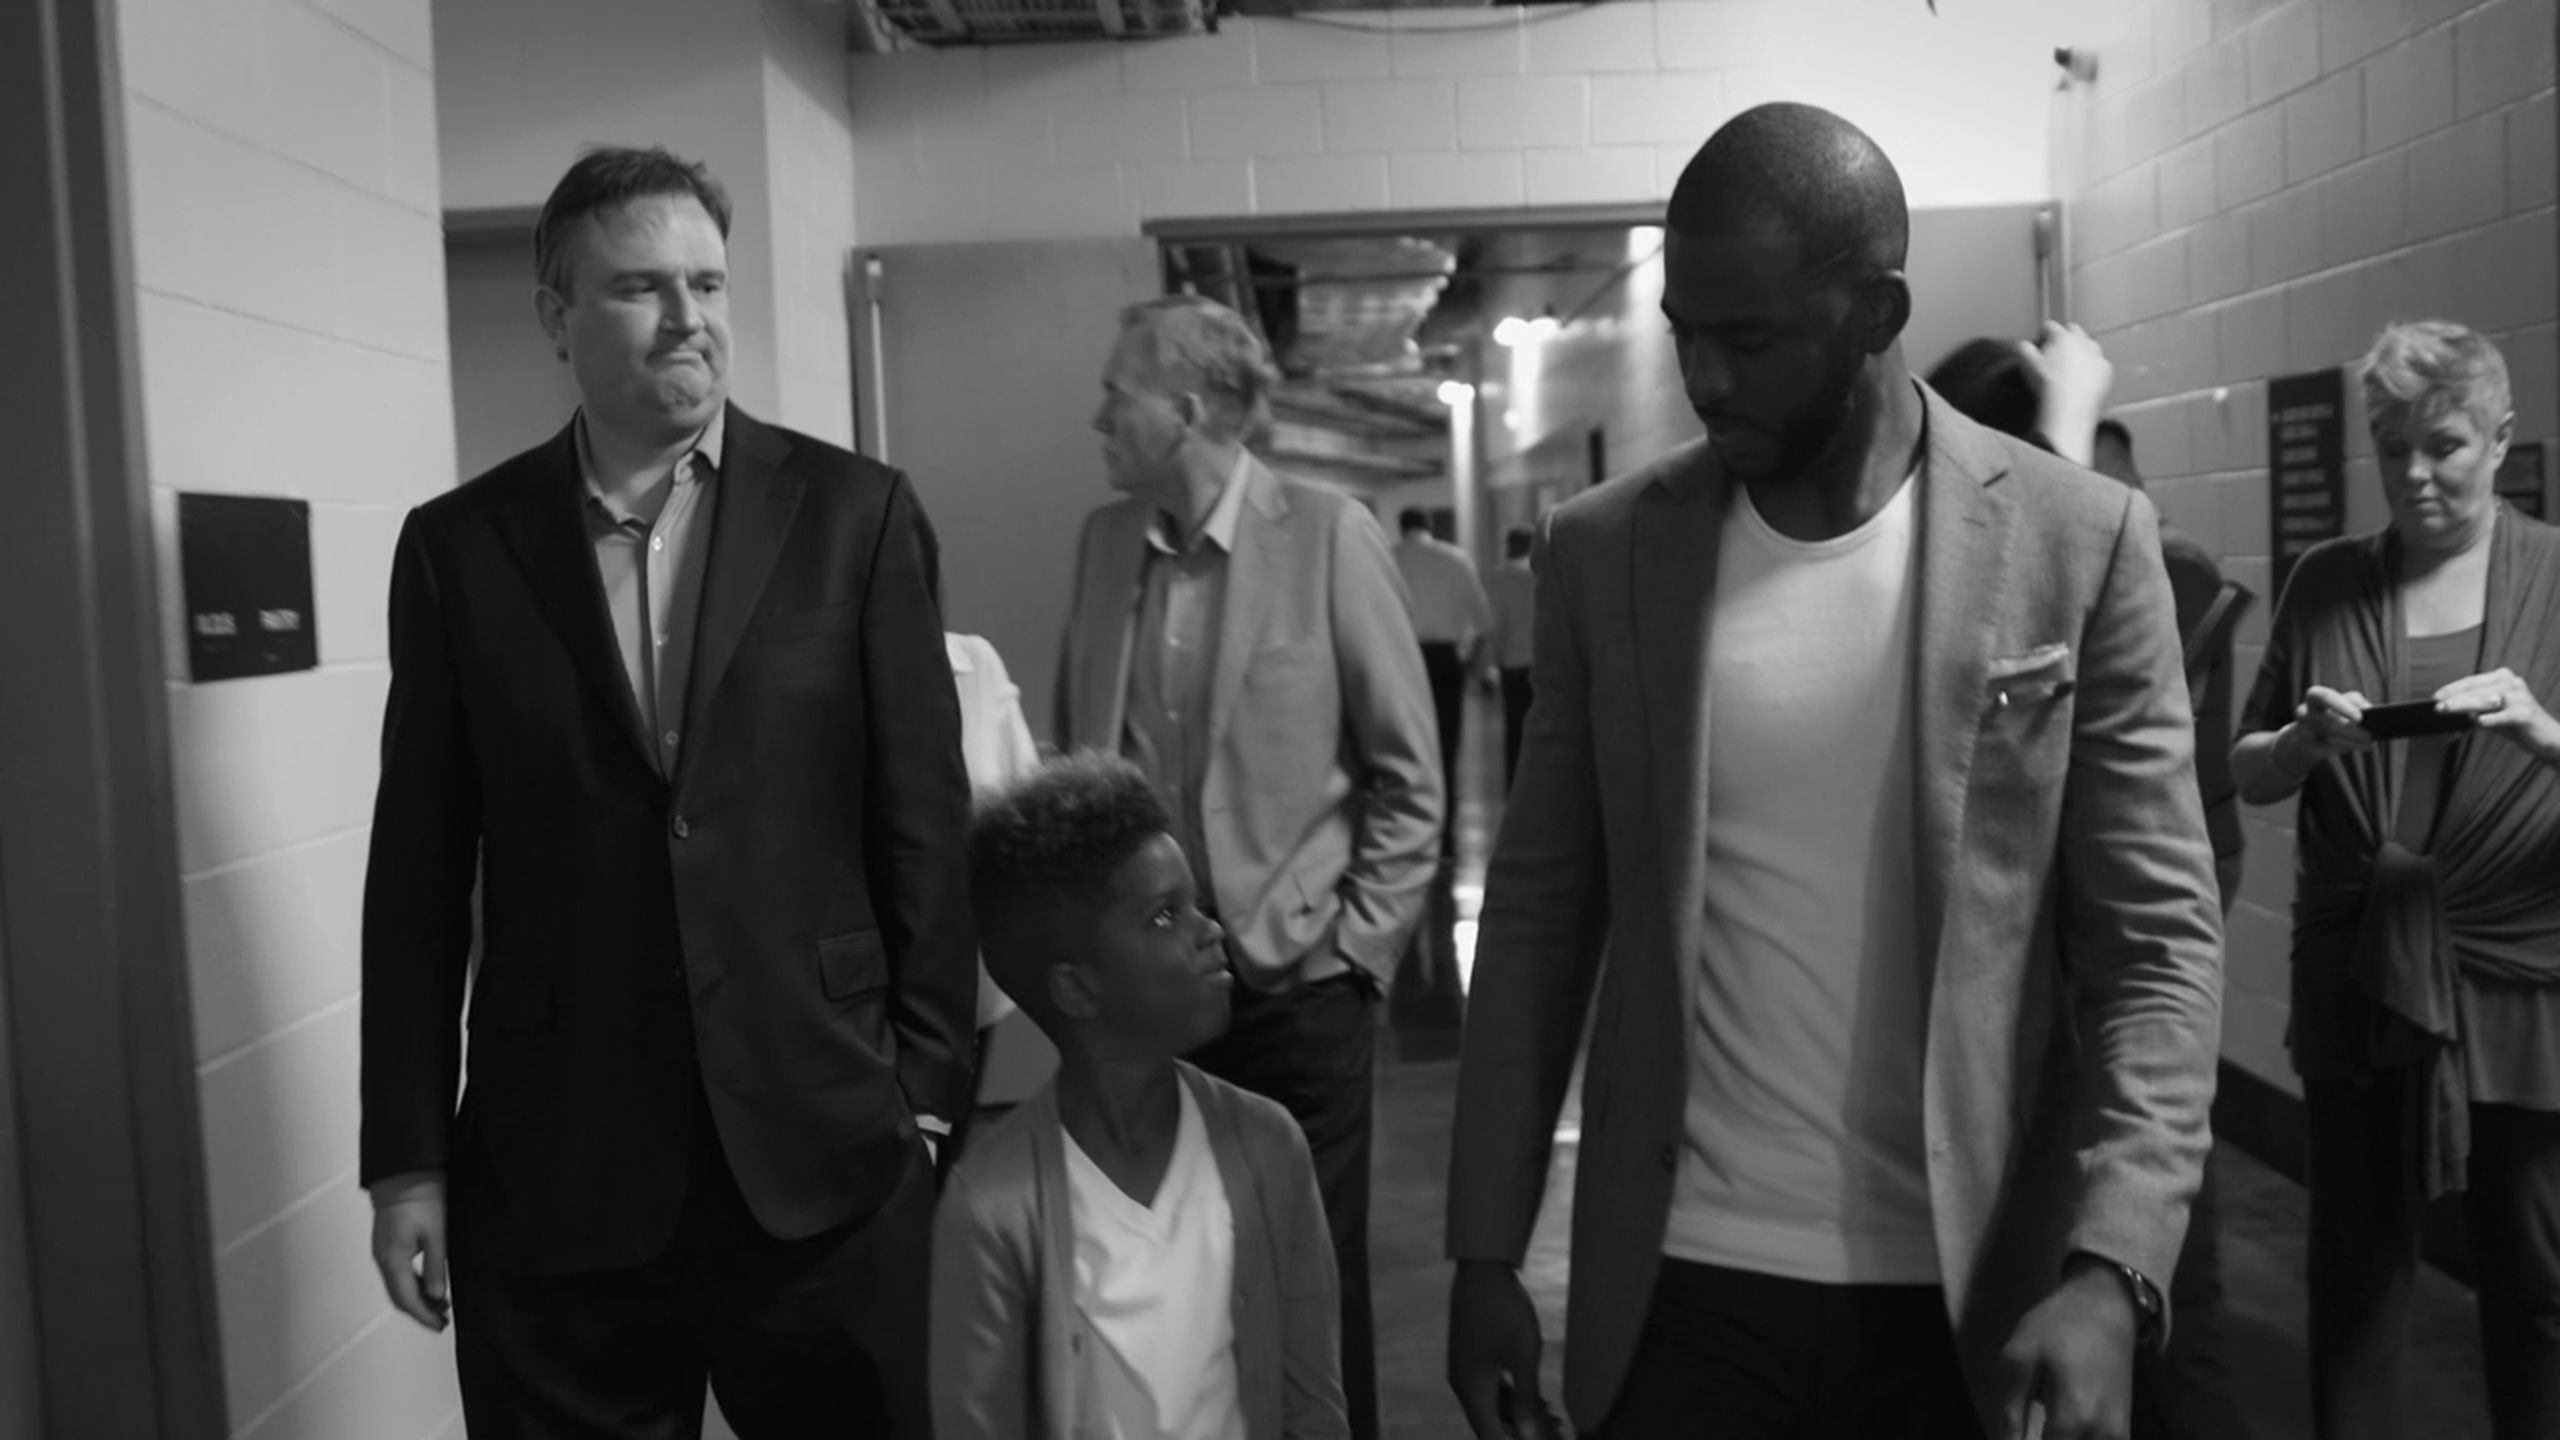 Chris Paul's Chapter 3 - Episode 2